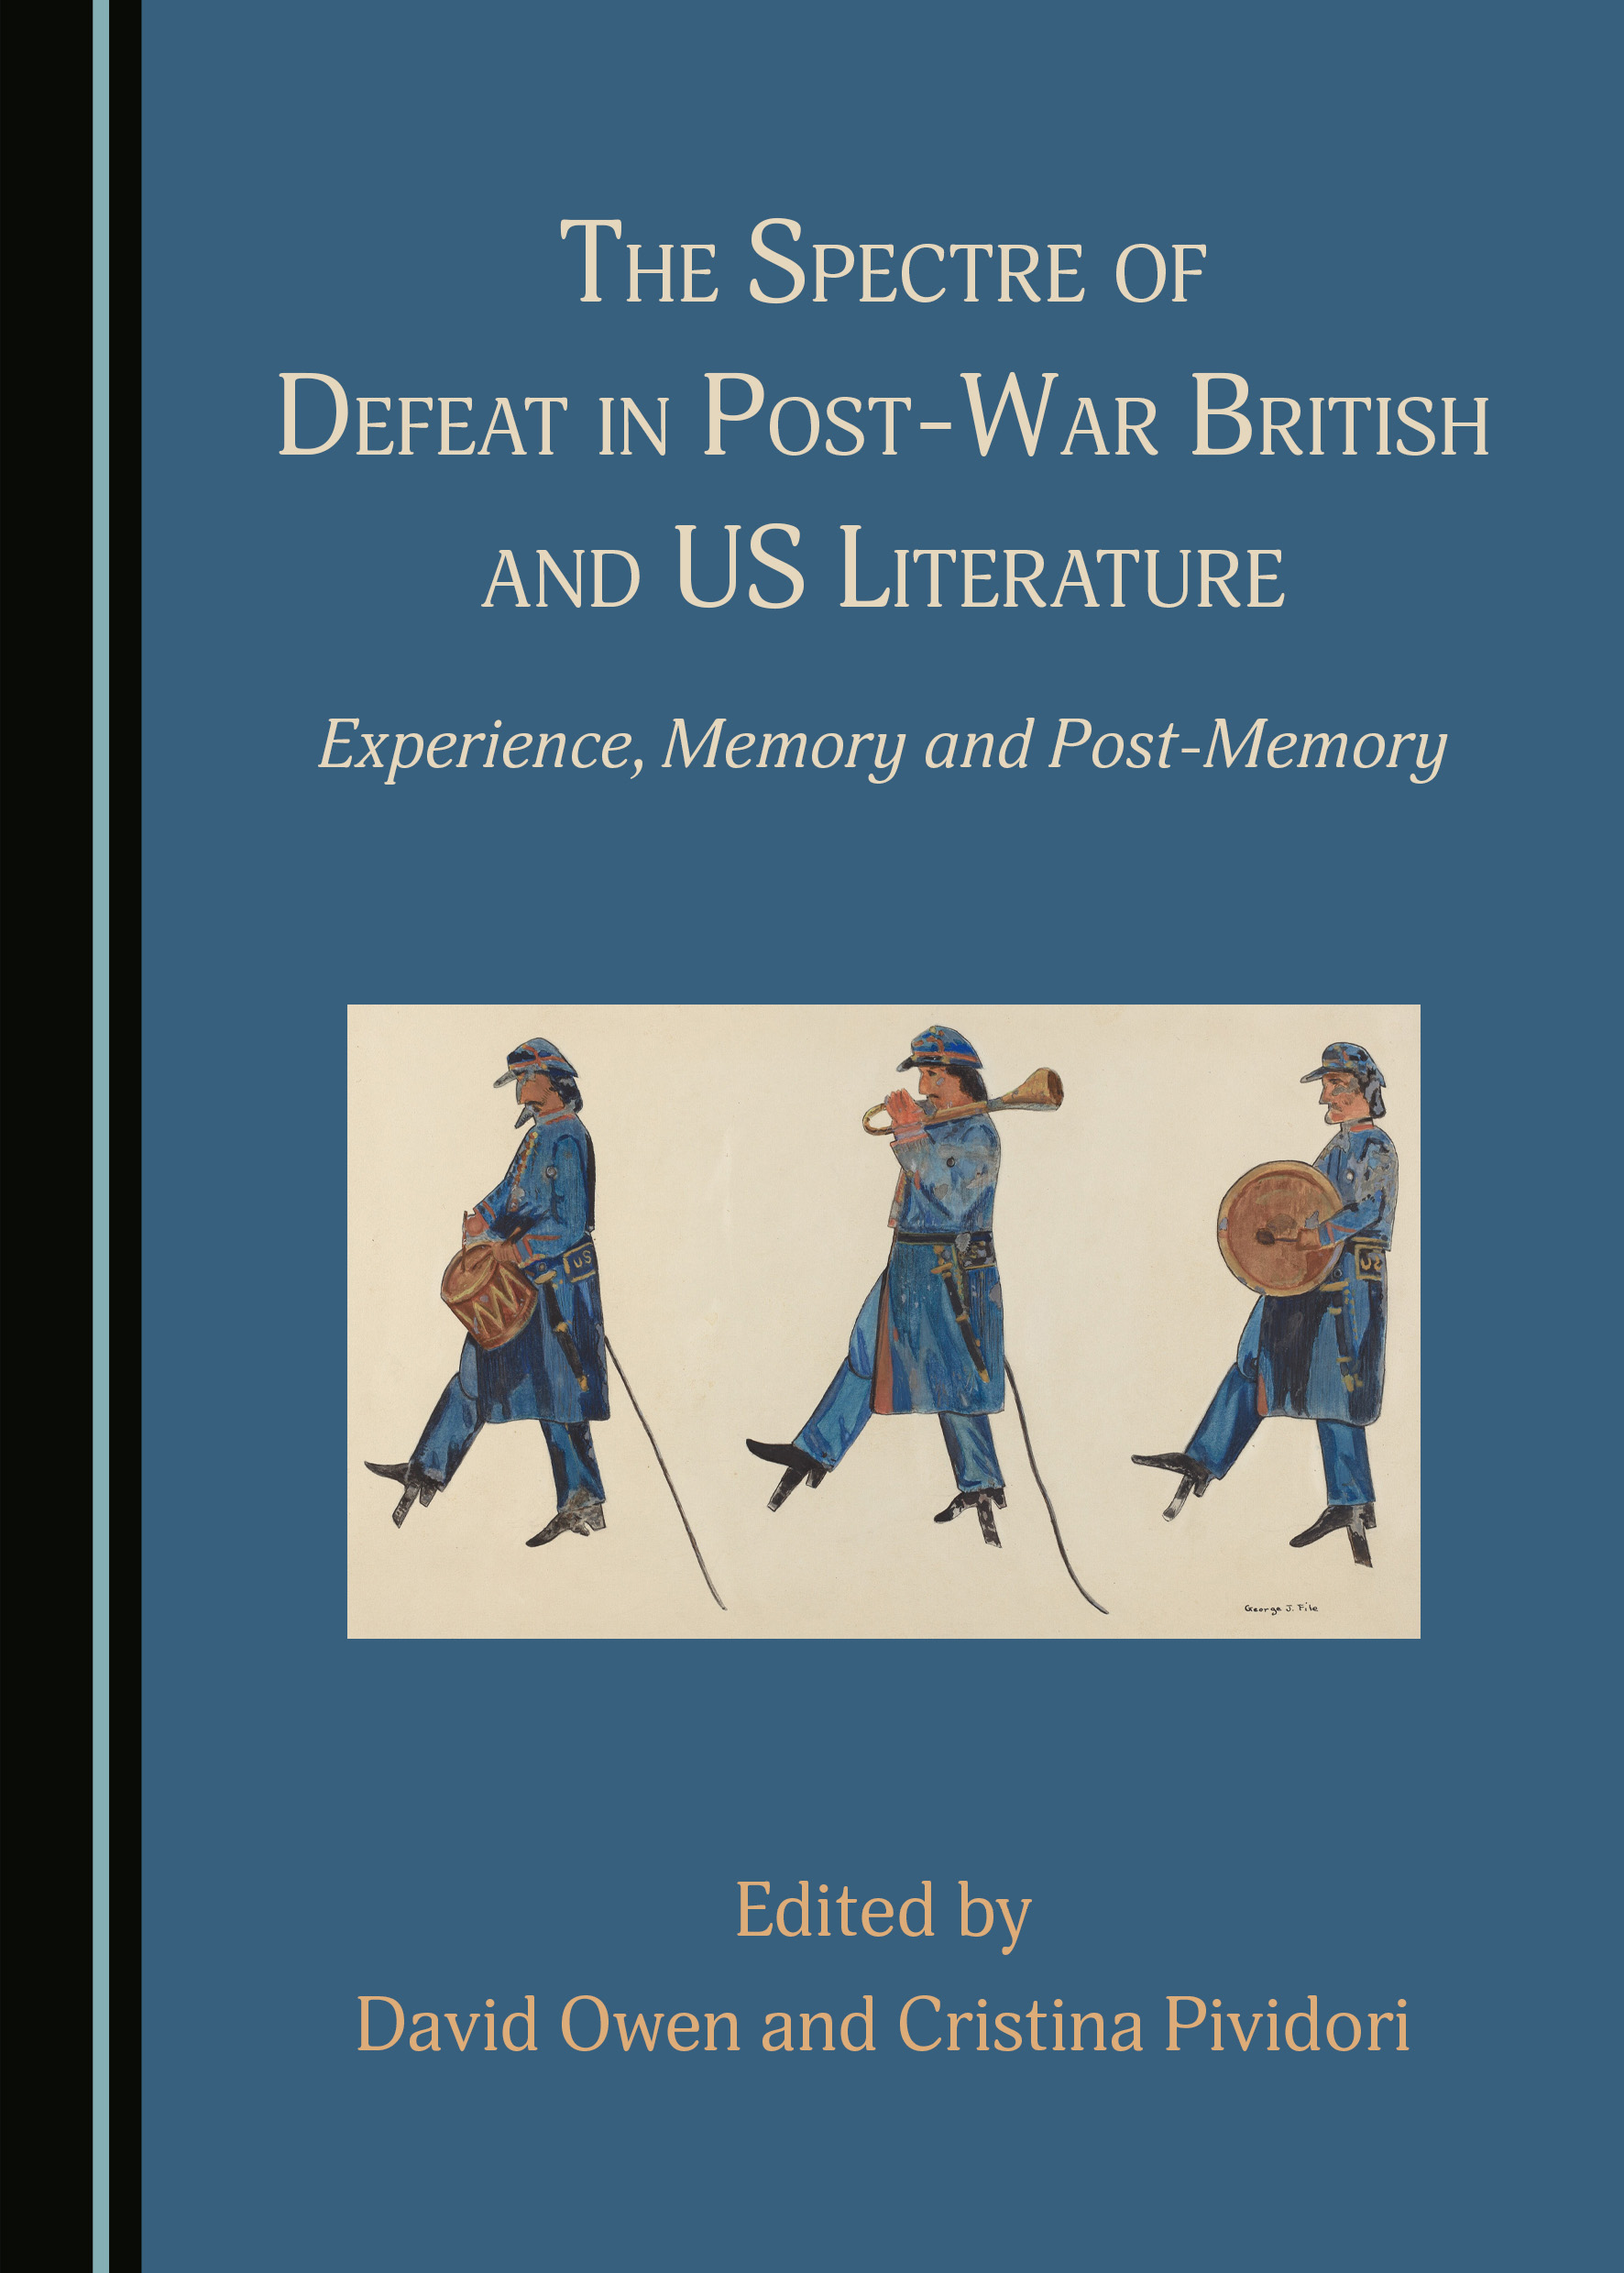 The Spectre of Defeat in Post-War British and US Literature: Experience, Memory and Post-Memory